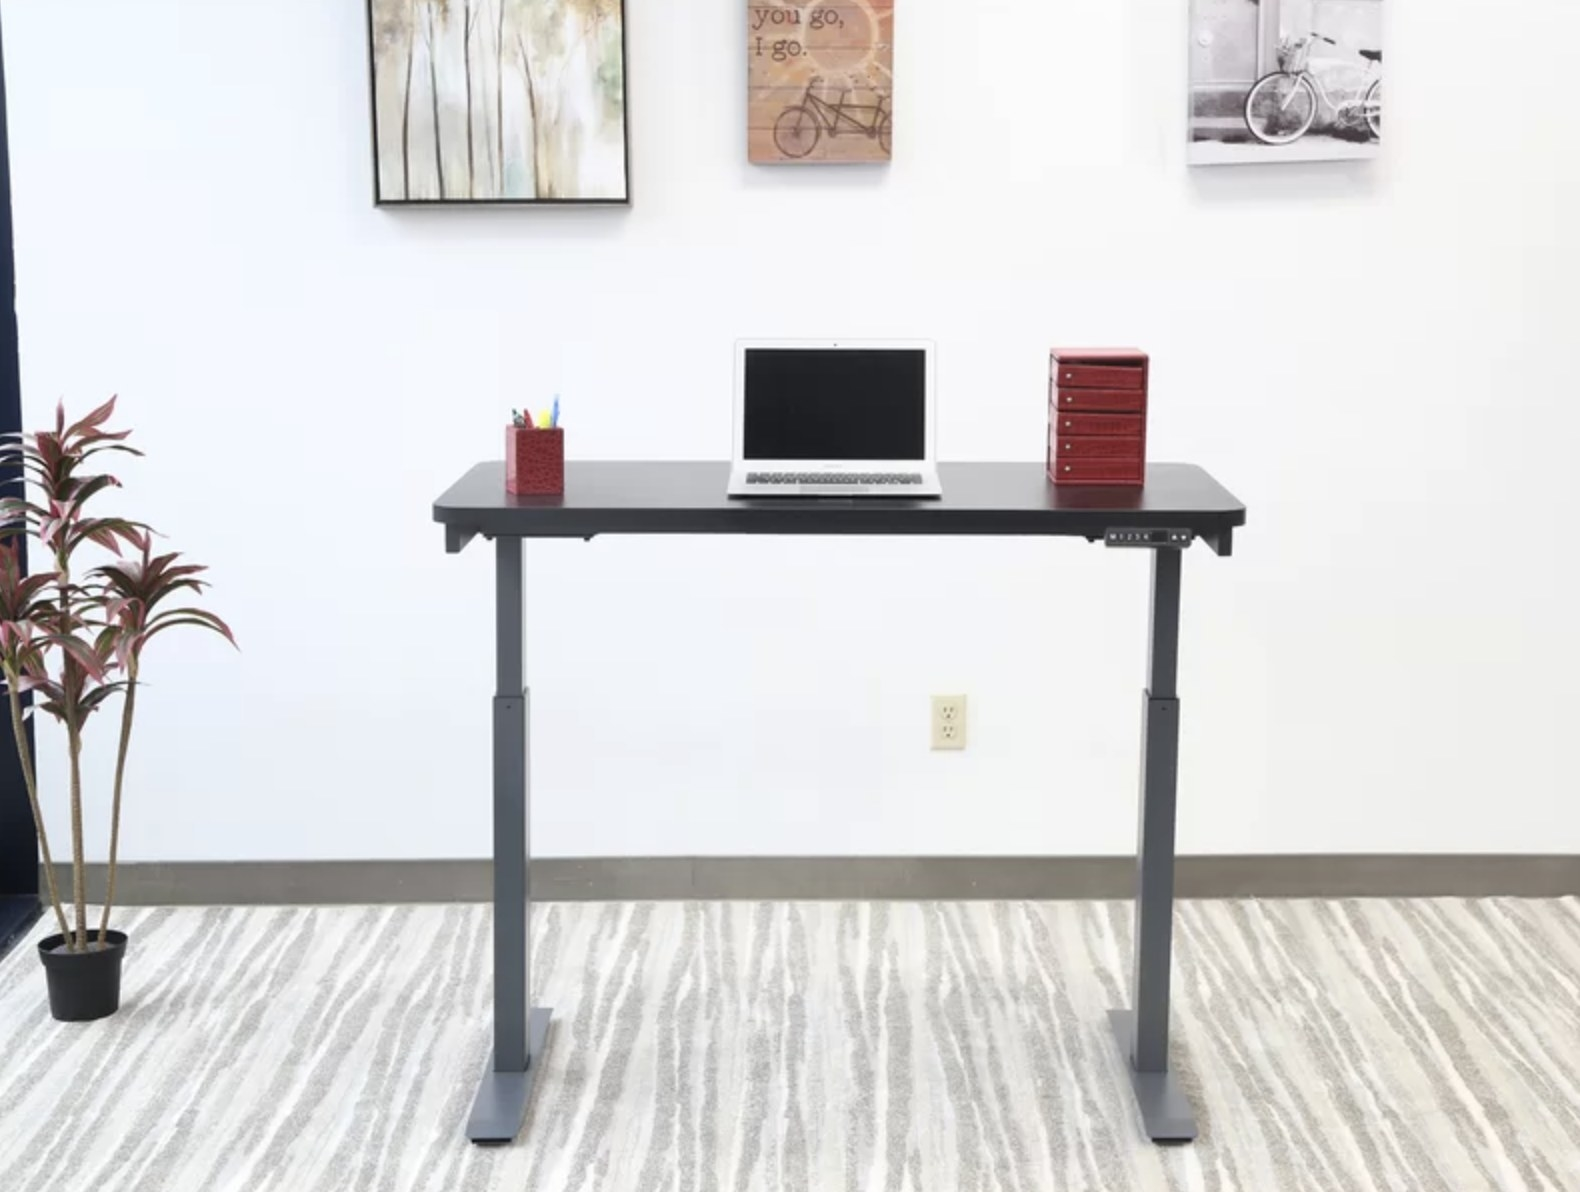 The adjustable standing desk